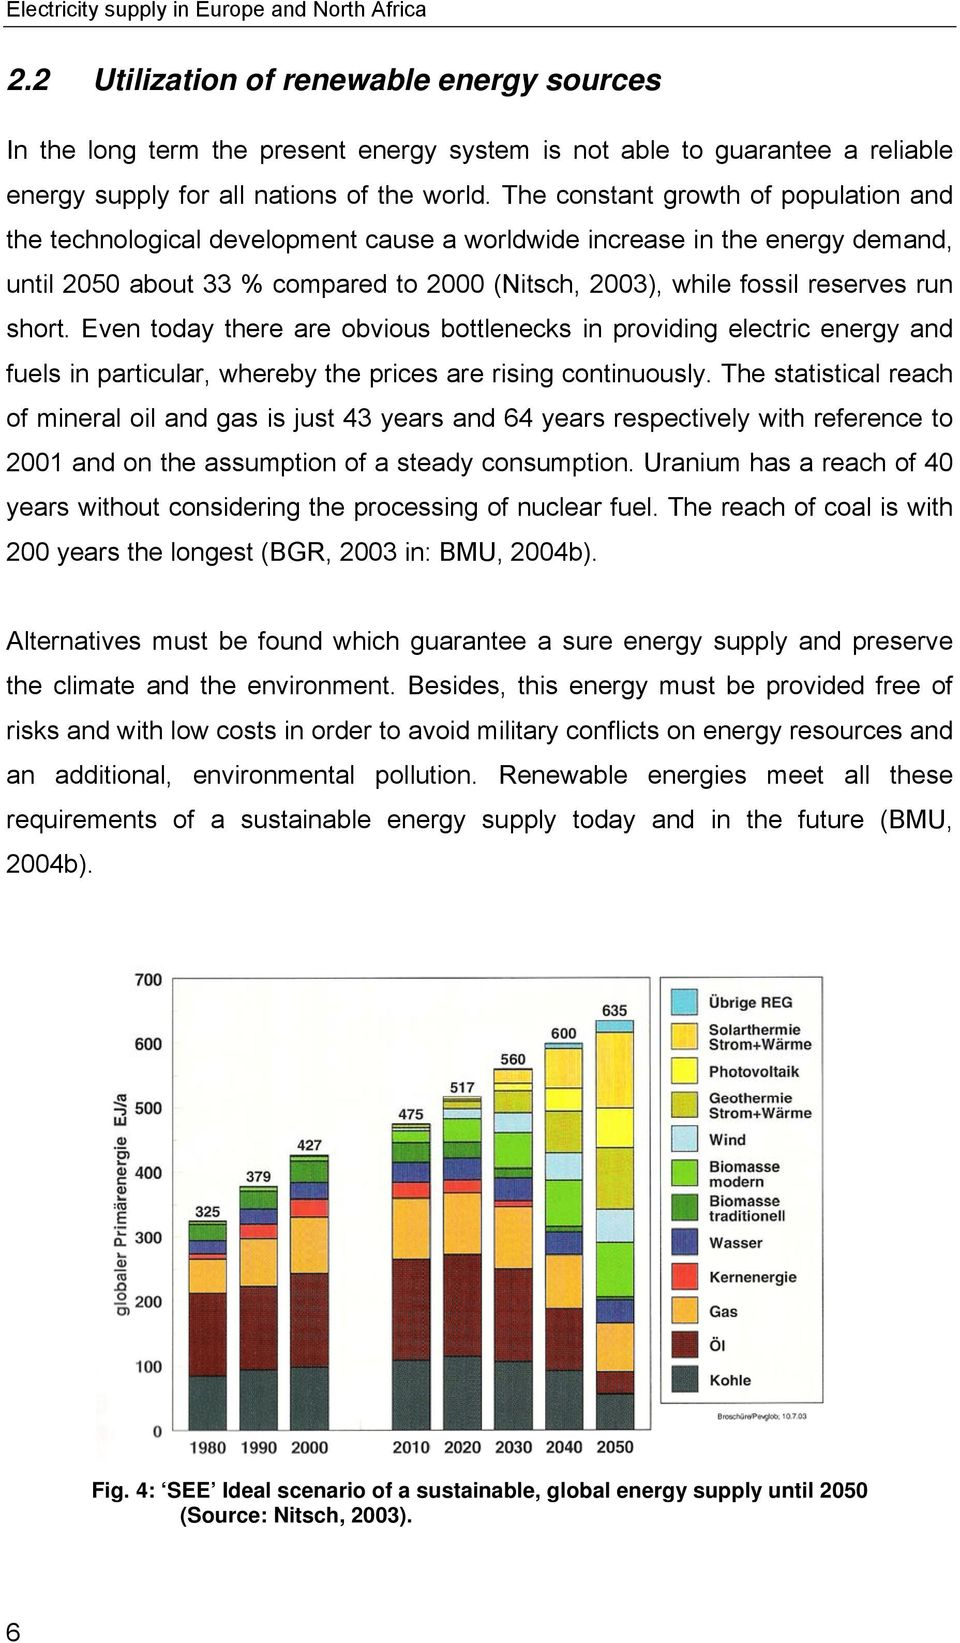 The constant growth of population and the technological development cause a worldwide increase in the energy demand, until 2050 about 33 % compared to 2000 (Nitsch, 2003), while fossil reserves run